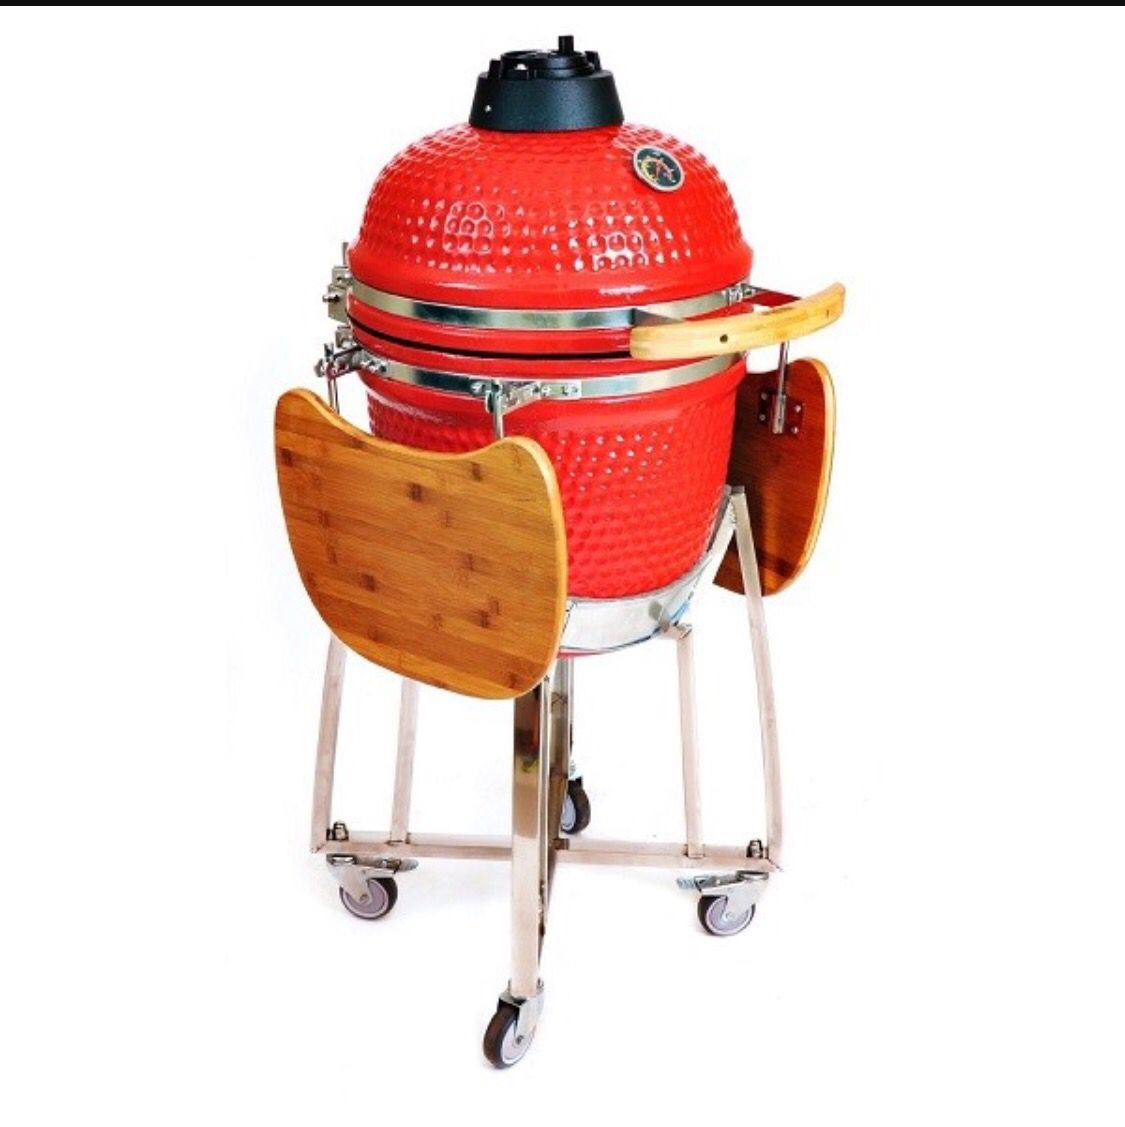 Signal Red smoker never use your cooker again Ceramic